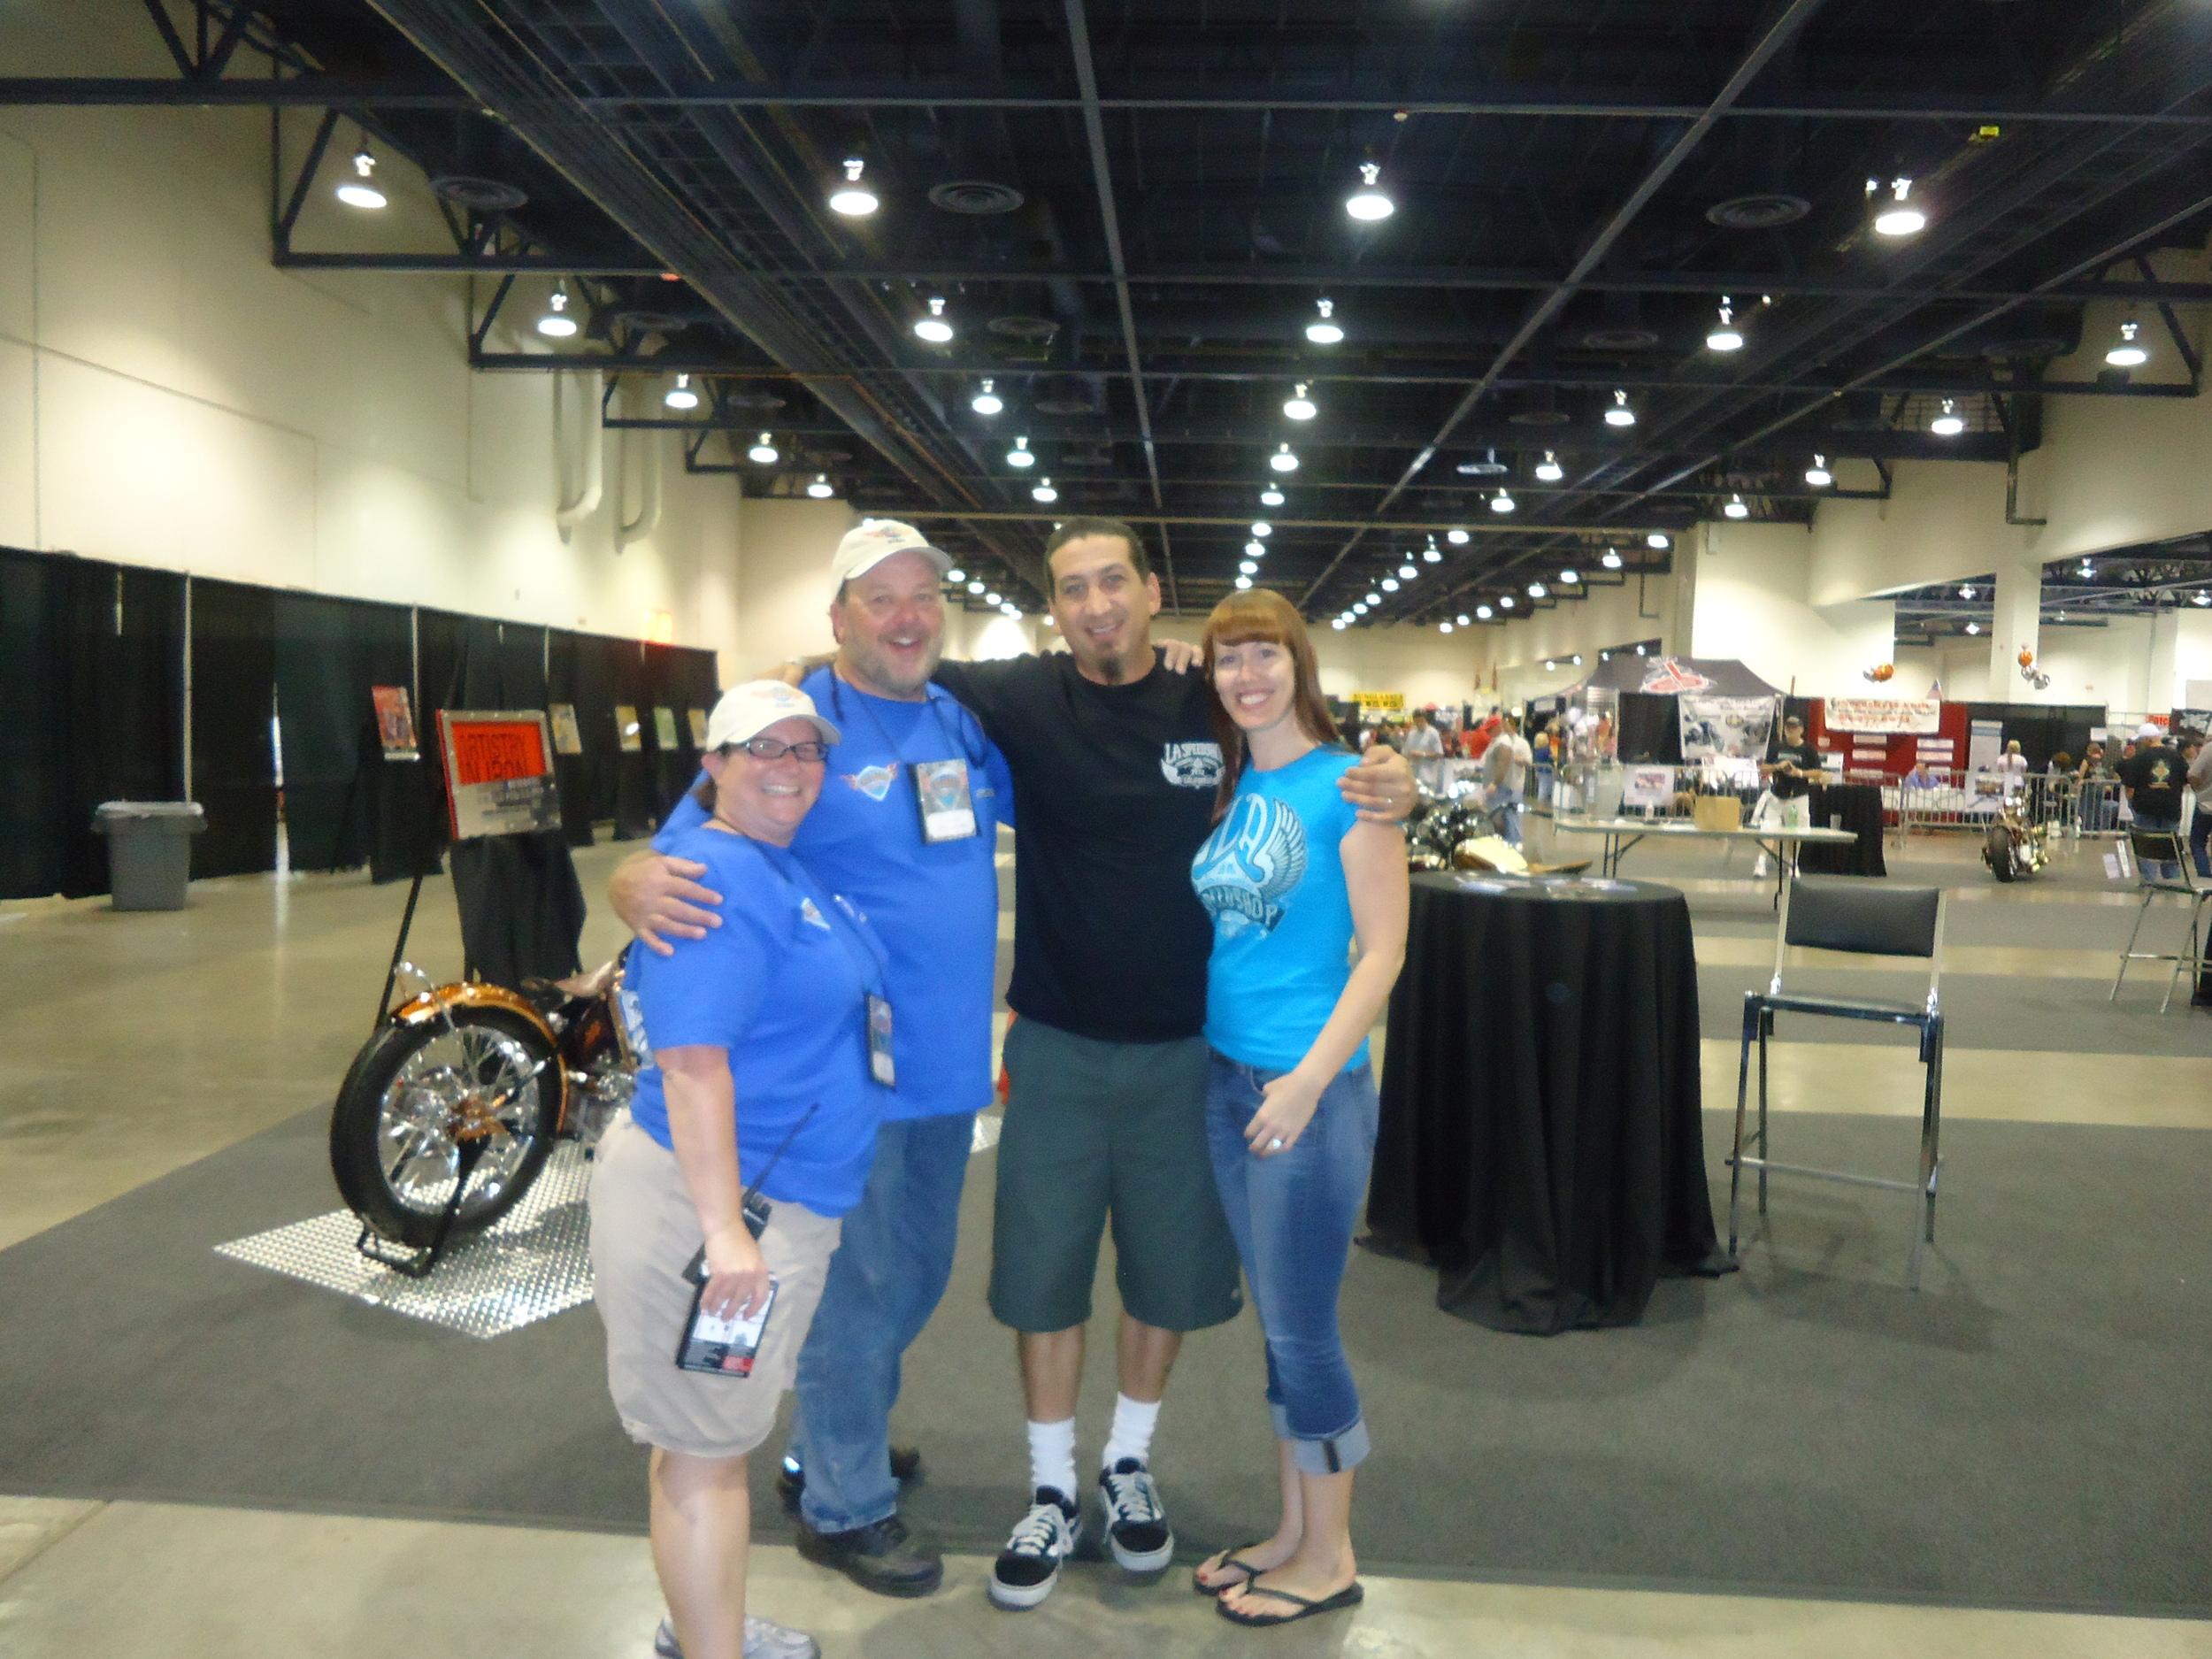 Chris & Fiona with Mindi & Mike (part of the amazing LV Bikefest staff)